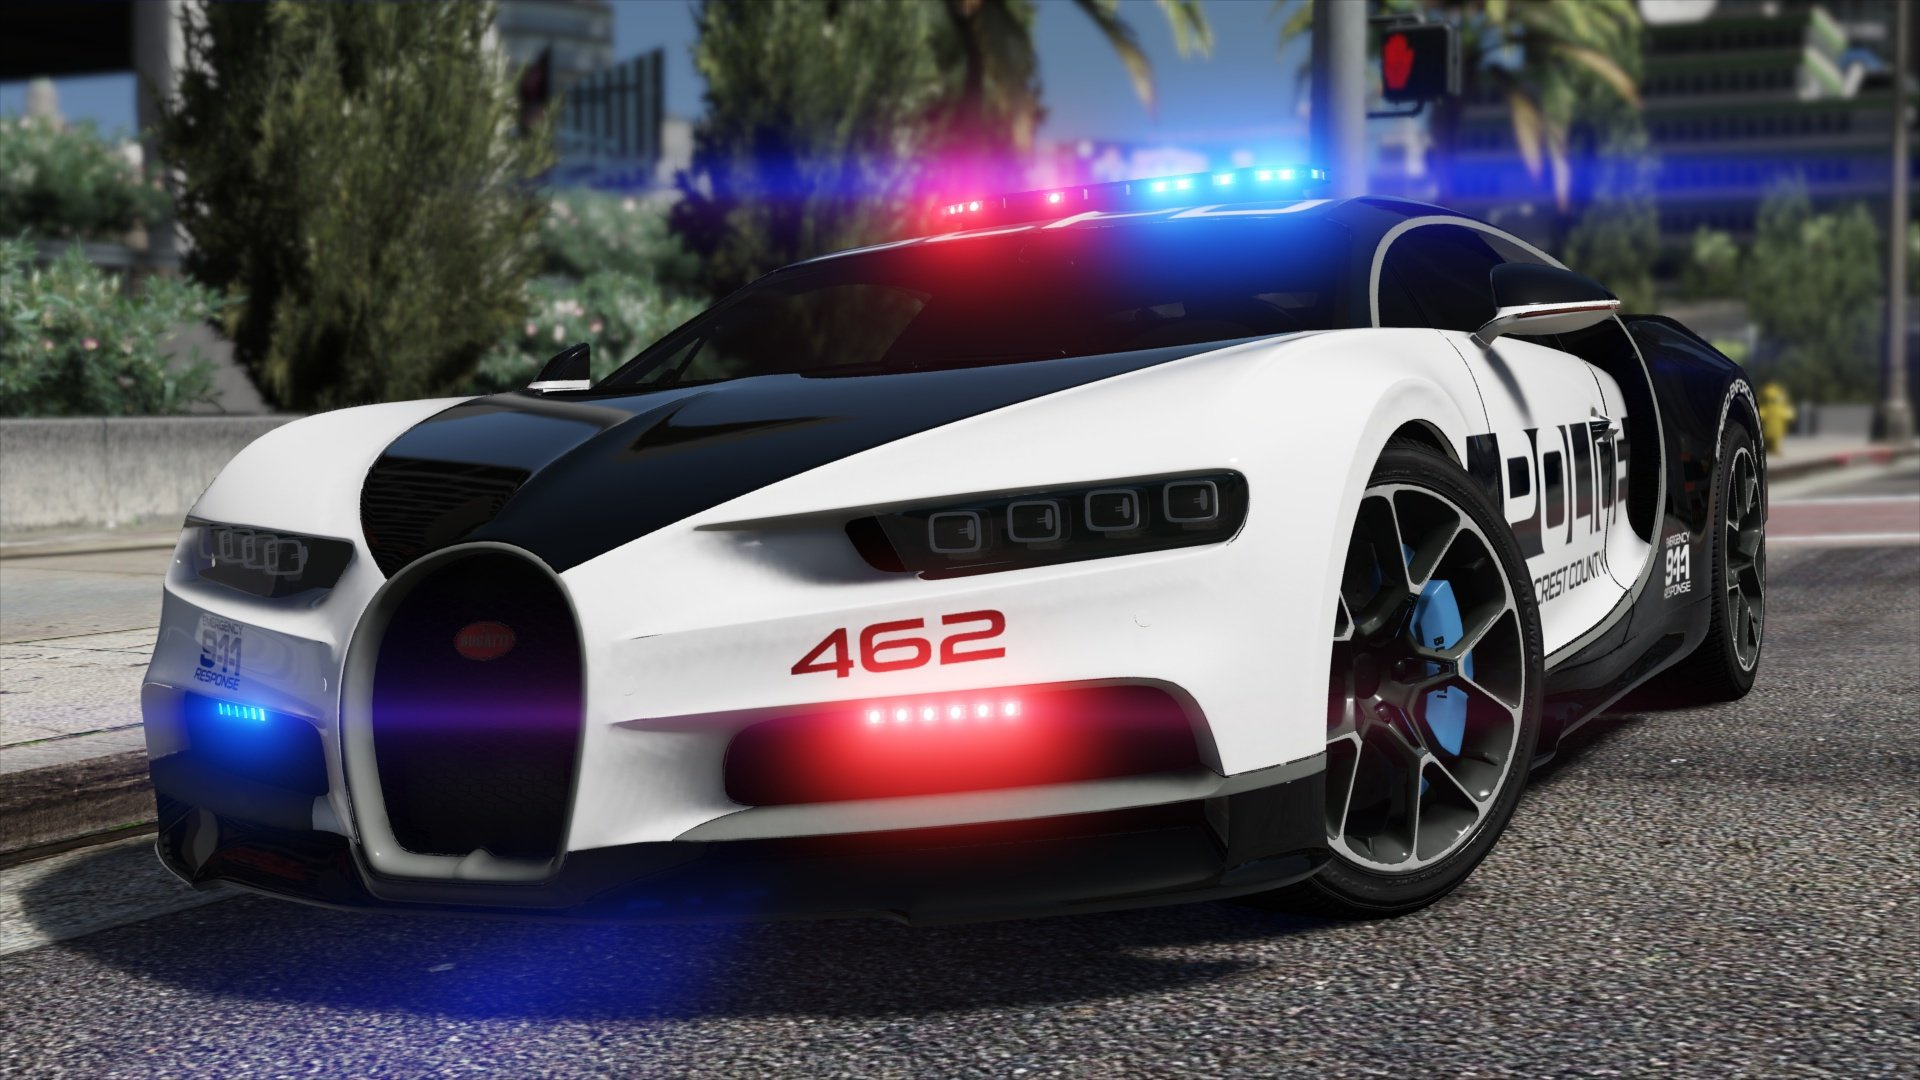 bugatti chiron vs veyron with Bugatti Chiron Hot Pursuit Police Add On Replace Template on Watch also 2018 bugatti chiron sport 4k Wallpapers additionally Bugatti Veyron Grand Sport Vitesse Black Bess Tribute likewise 7C 7C  theexpensivecars   7Cwp Content 7Cuploads 7C2011 7C11 7CCristiano Ronaldo Bugatti Veyron Wallpaper Pictures additionally Watch.